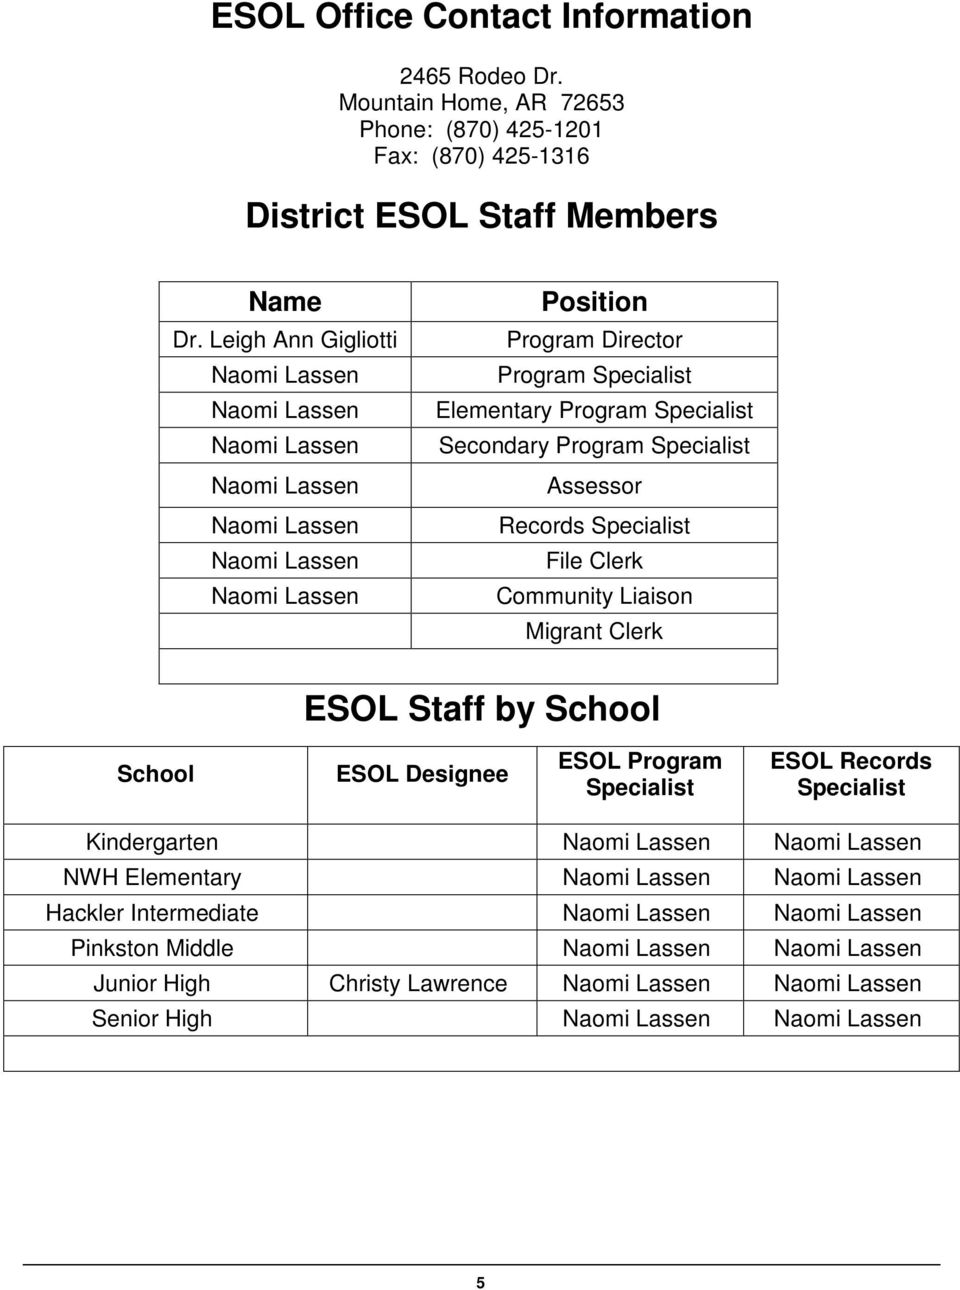 Program Specialist Assessor Records Specialist File Clerk Community Liaison Migrant Clerk ESOL Staff by School School ESOL Designee ESOL Program Specialist ESOL Records Specialist Kindergarten